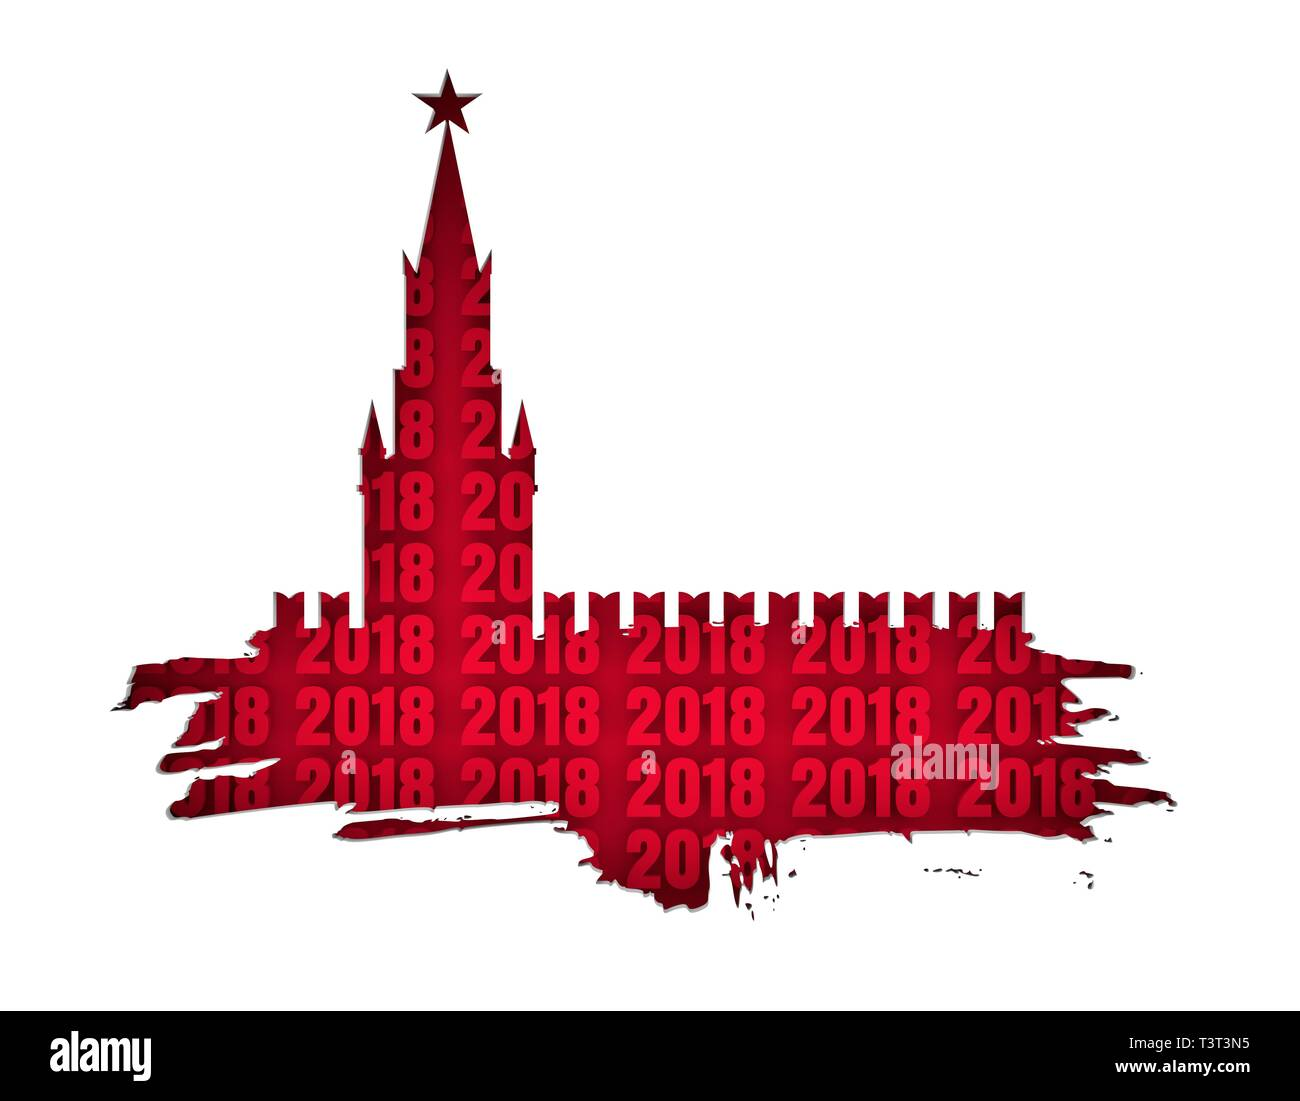 Spasskaya Tower of Kremlin and part of the wall in Moscow cutout silhouette. Grunge brush. 3D rendering. Russian capital famous place. 2018 new year n - Stock Image